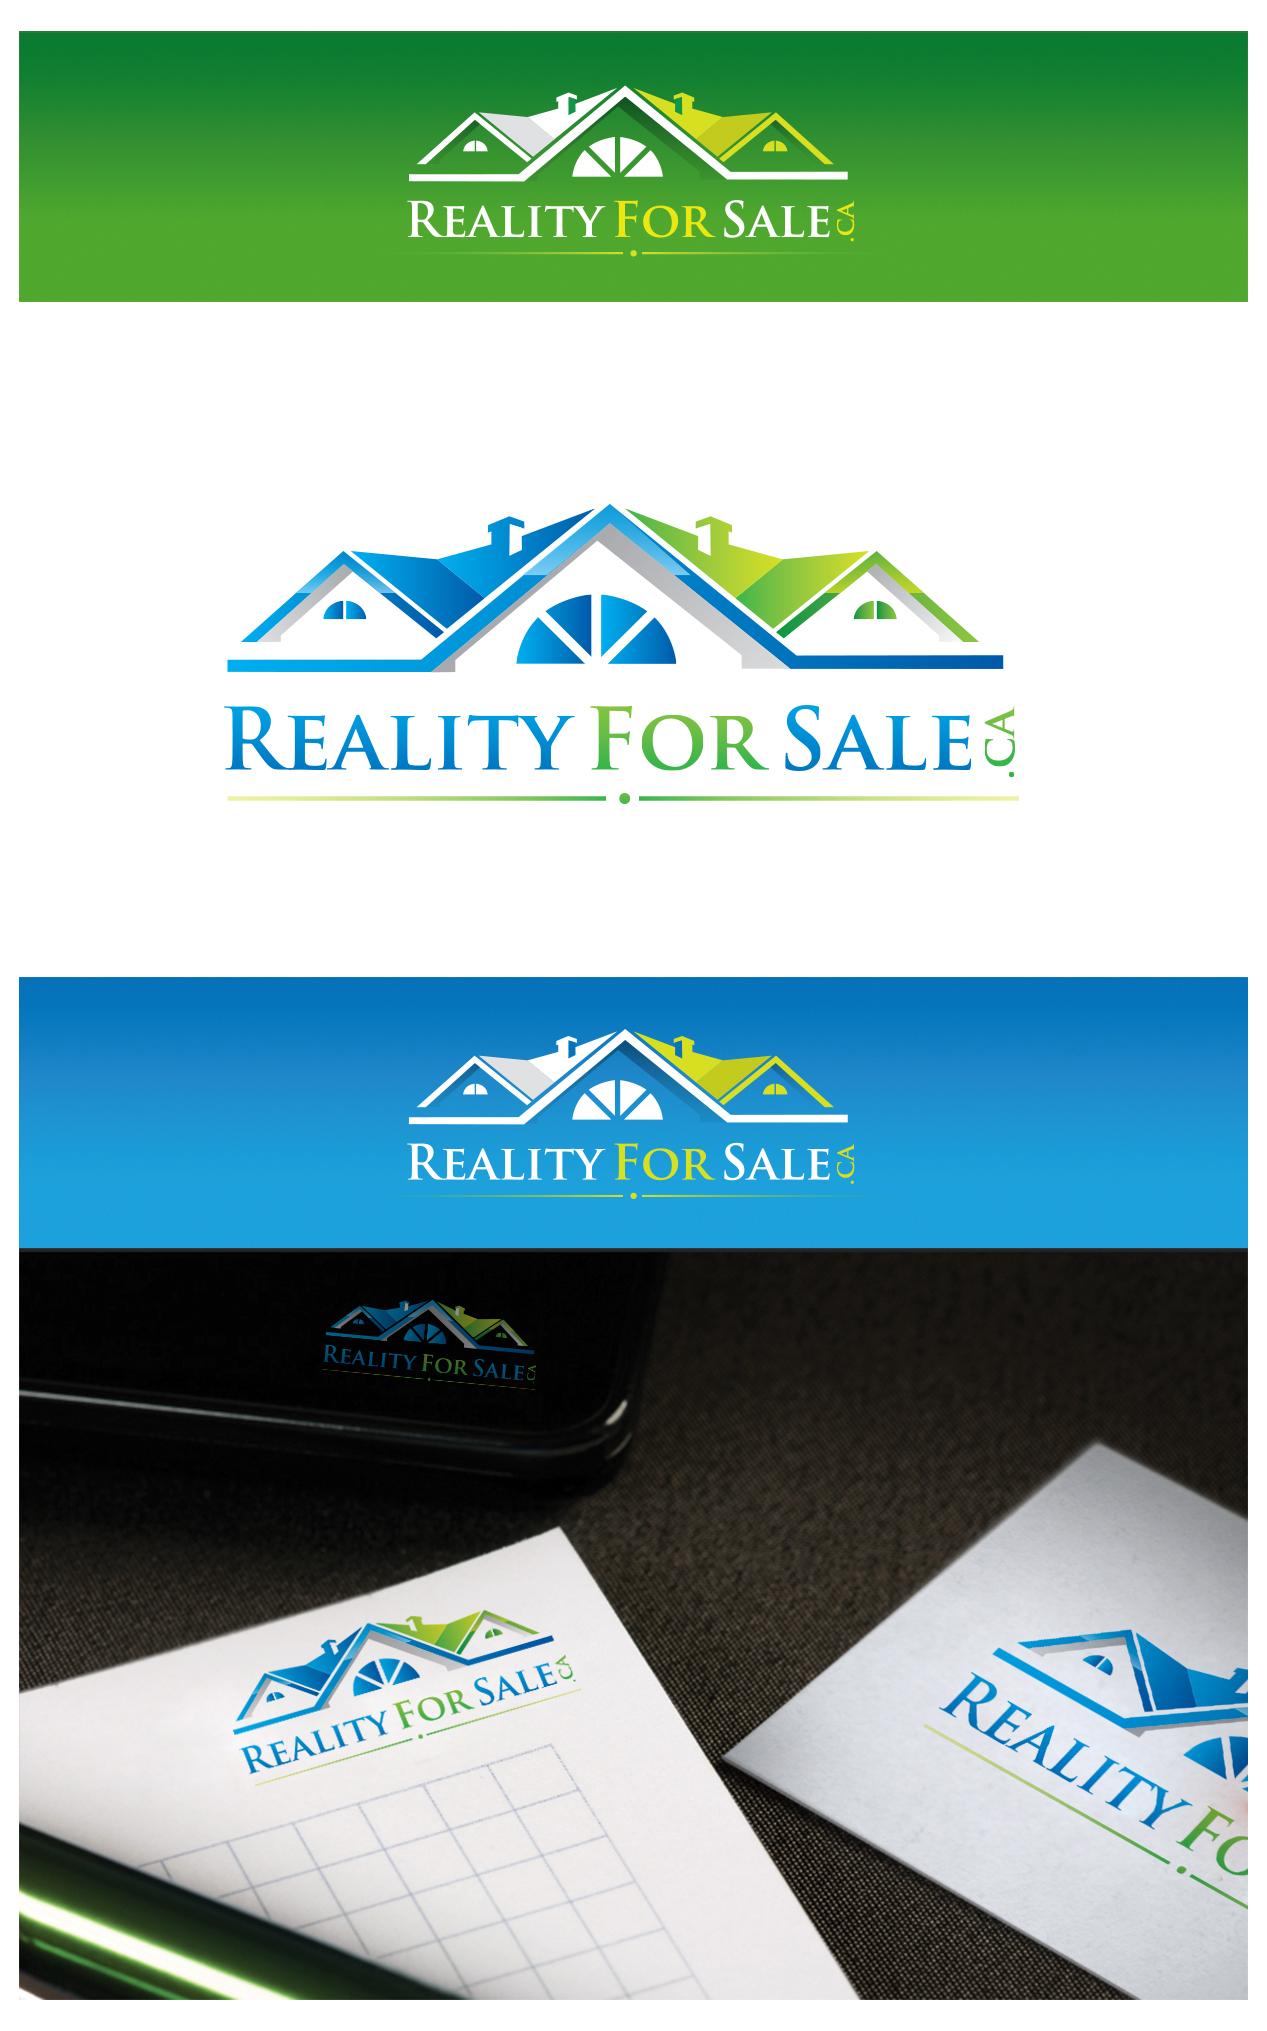 Logo Design by Creasian - Entry No. 74 in the Logo Design Contest Inspiring Logo Design for RealtyForSale.ca.